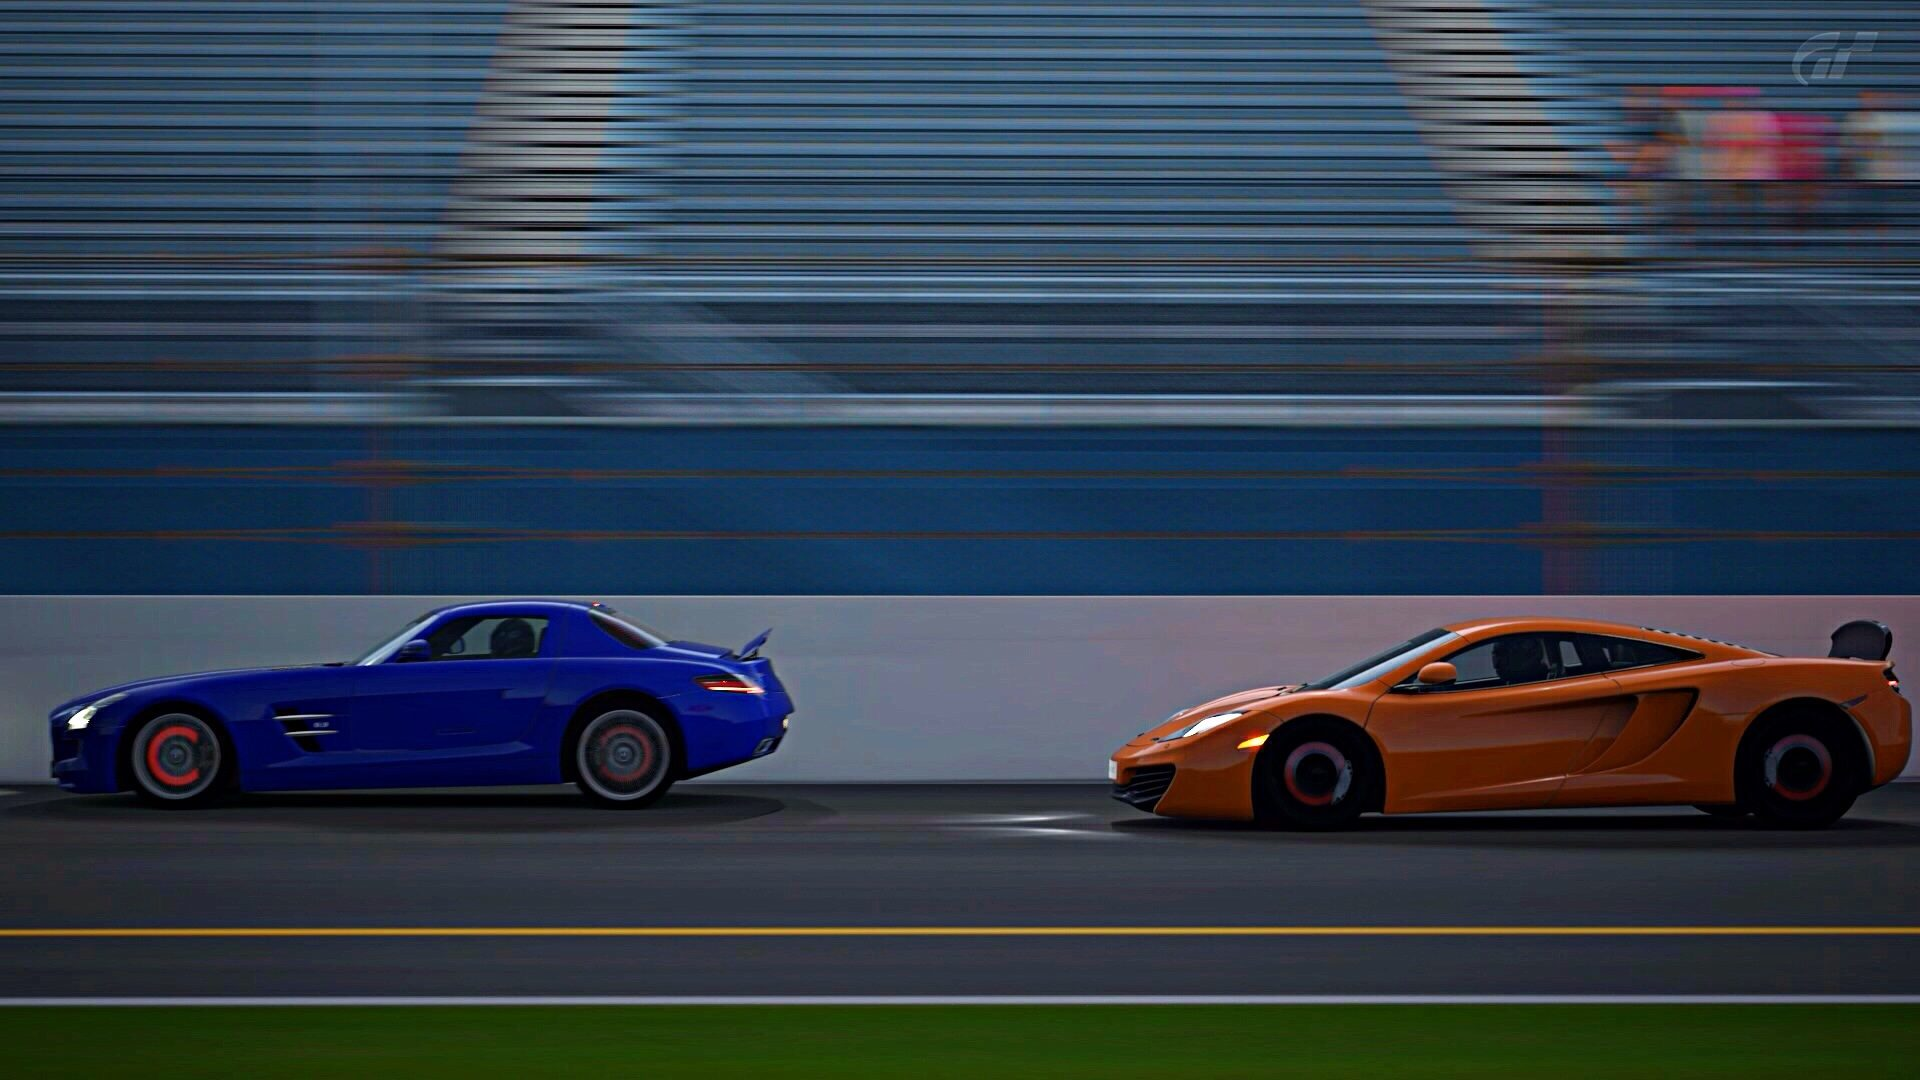 MP4-12C GTC Daytona Road Course (8).jpg